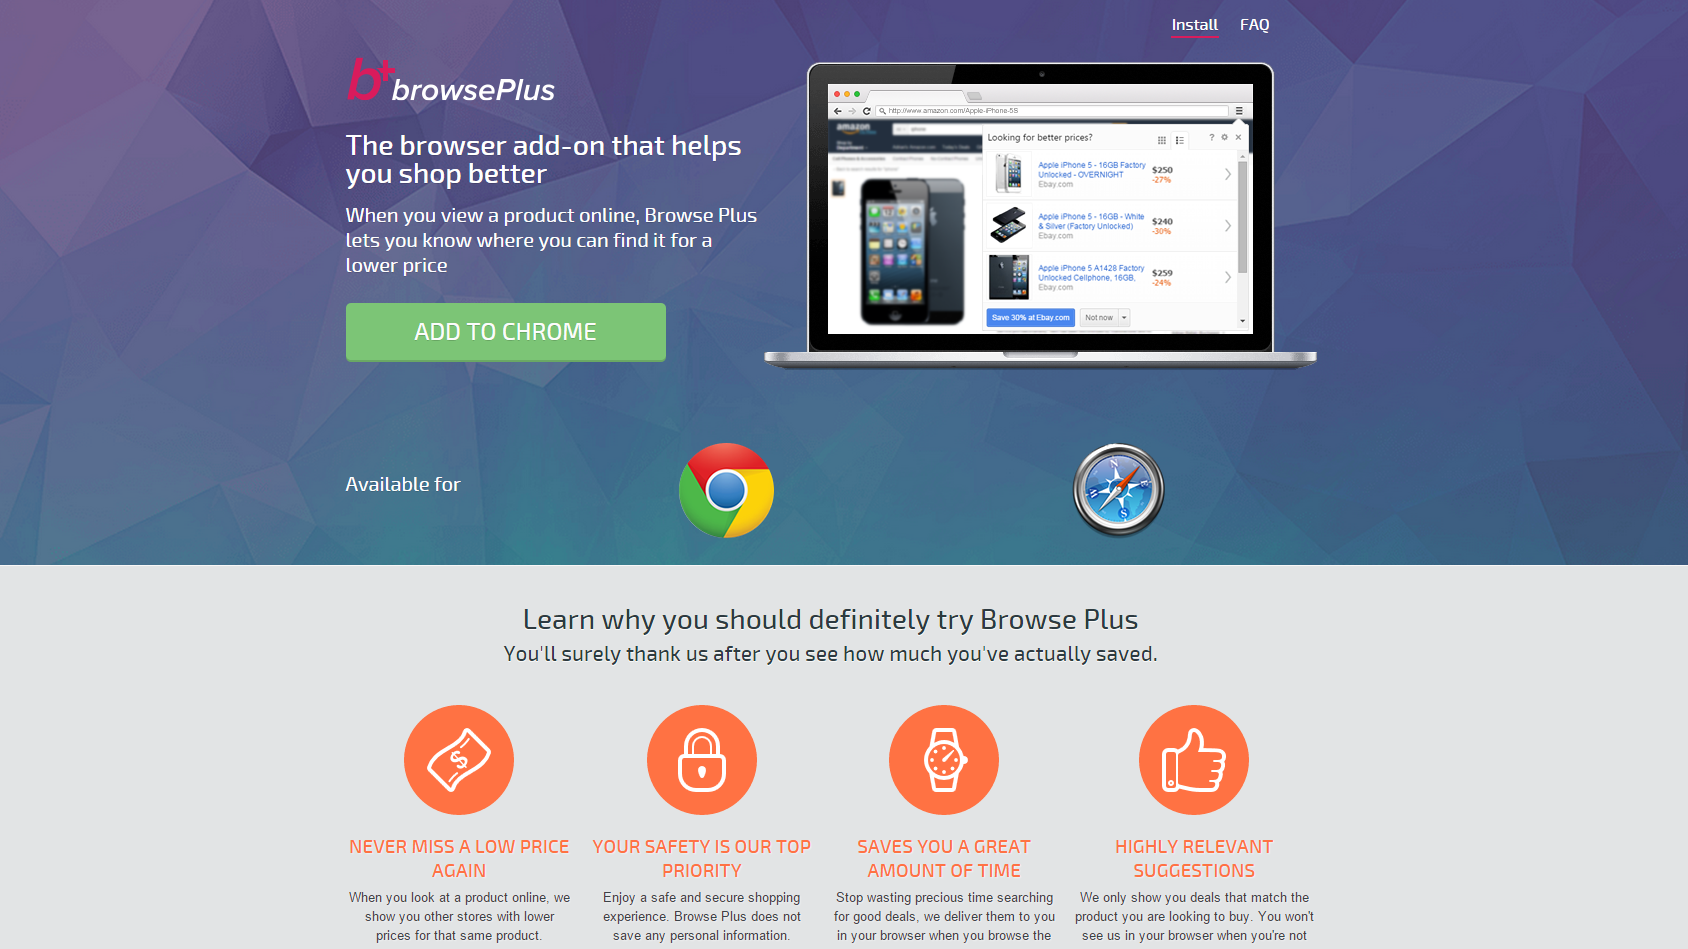 Browser Plus ads